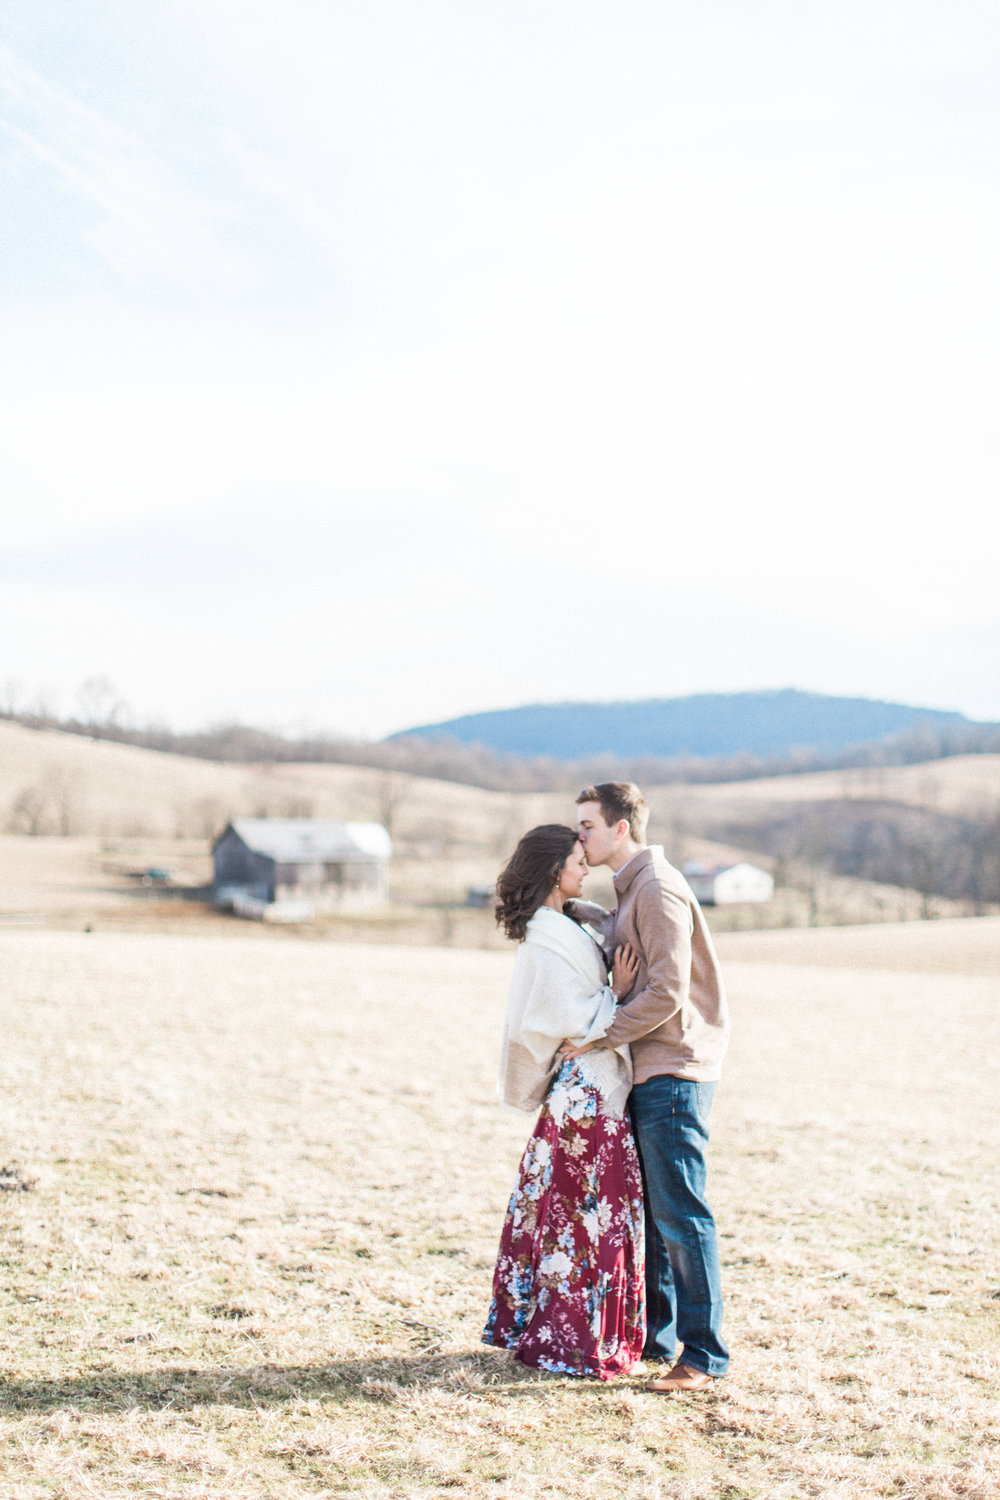 Abigail_Jill_Photography_Maryland_Engagement_Farm_Emily_Justin199.jpg